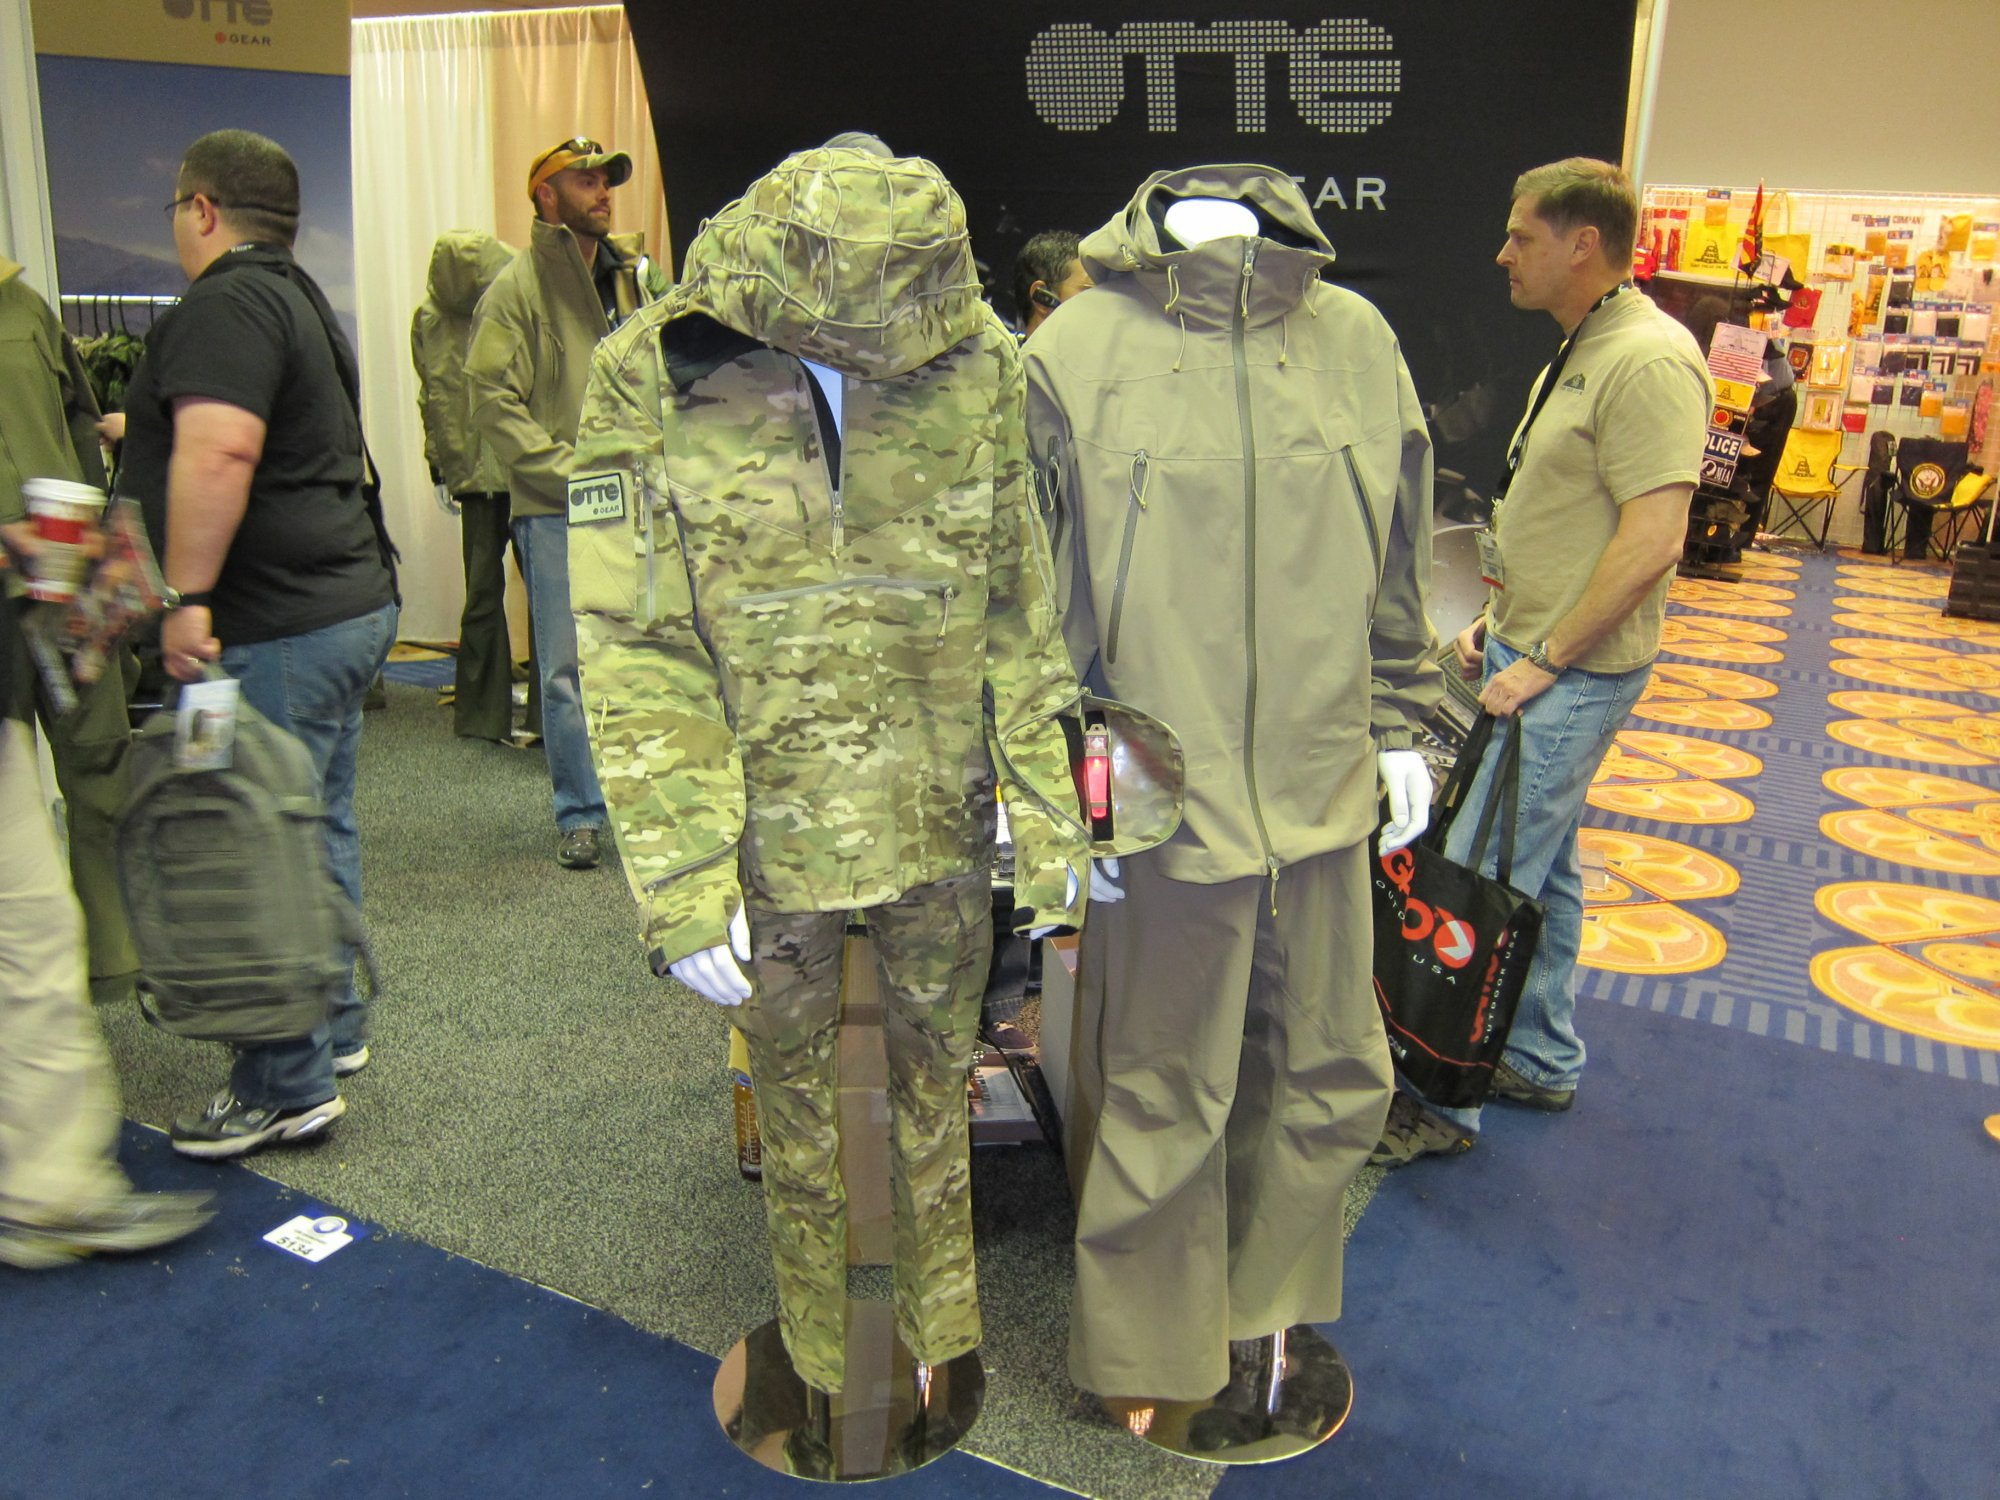 OTTE Gear Combat Anorak Hooded Pullover Tactical Softshell Jacket SHOT Show 2011 DefenseReview.com DR 4 <!  :en  >OTTE Gear Recce/Overwatch Anorak: High End, High Tech Tactical/Combat Soft Shell Hoodie Sniper Jacket (Pullover Type) with Crye MultiCam Camouflage Pattern and Ghillie Platform for Snipers, Recce Operators/Assaulters and Civilian Tactical Shooters<!  :  >